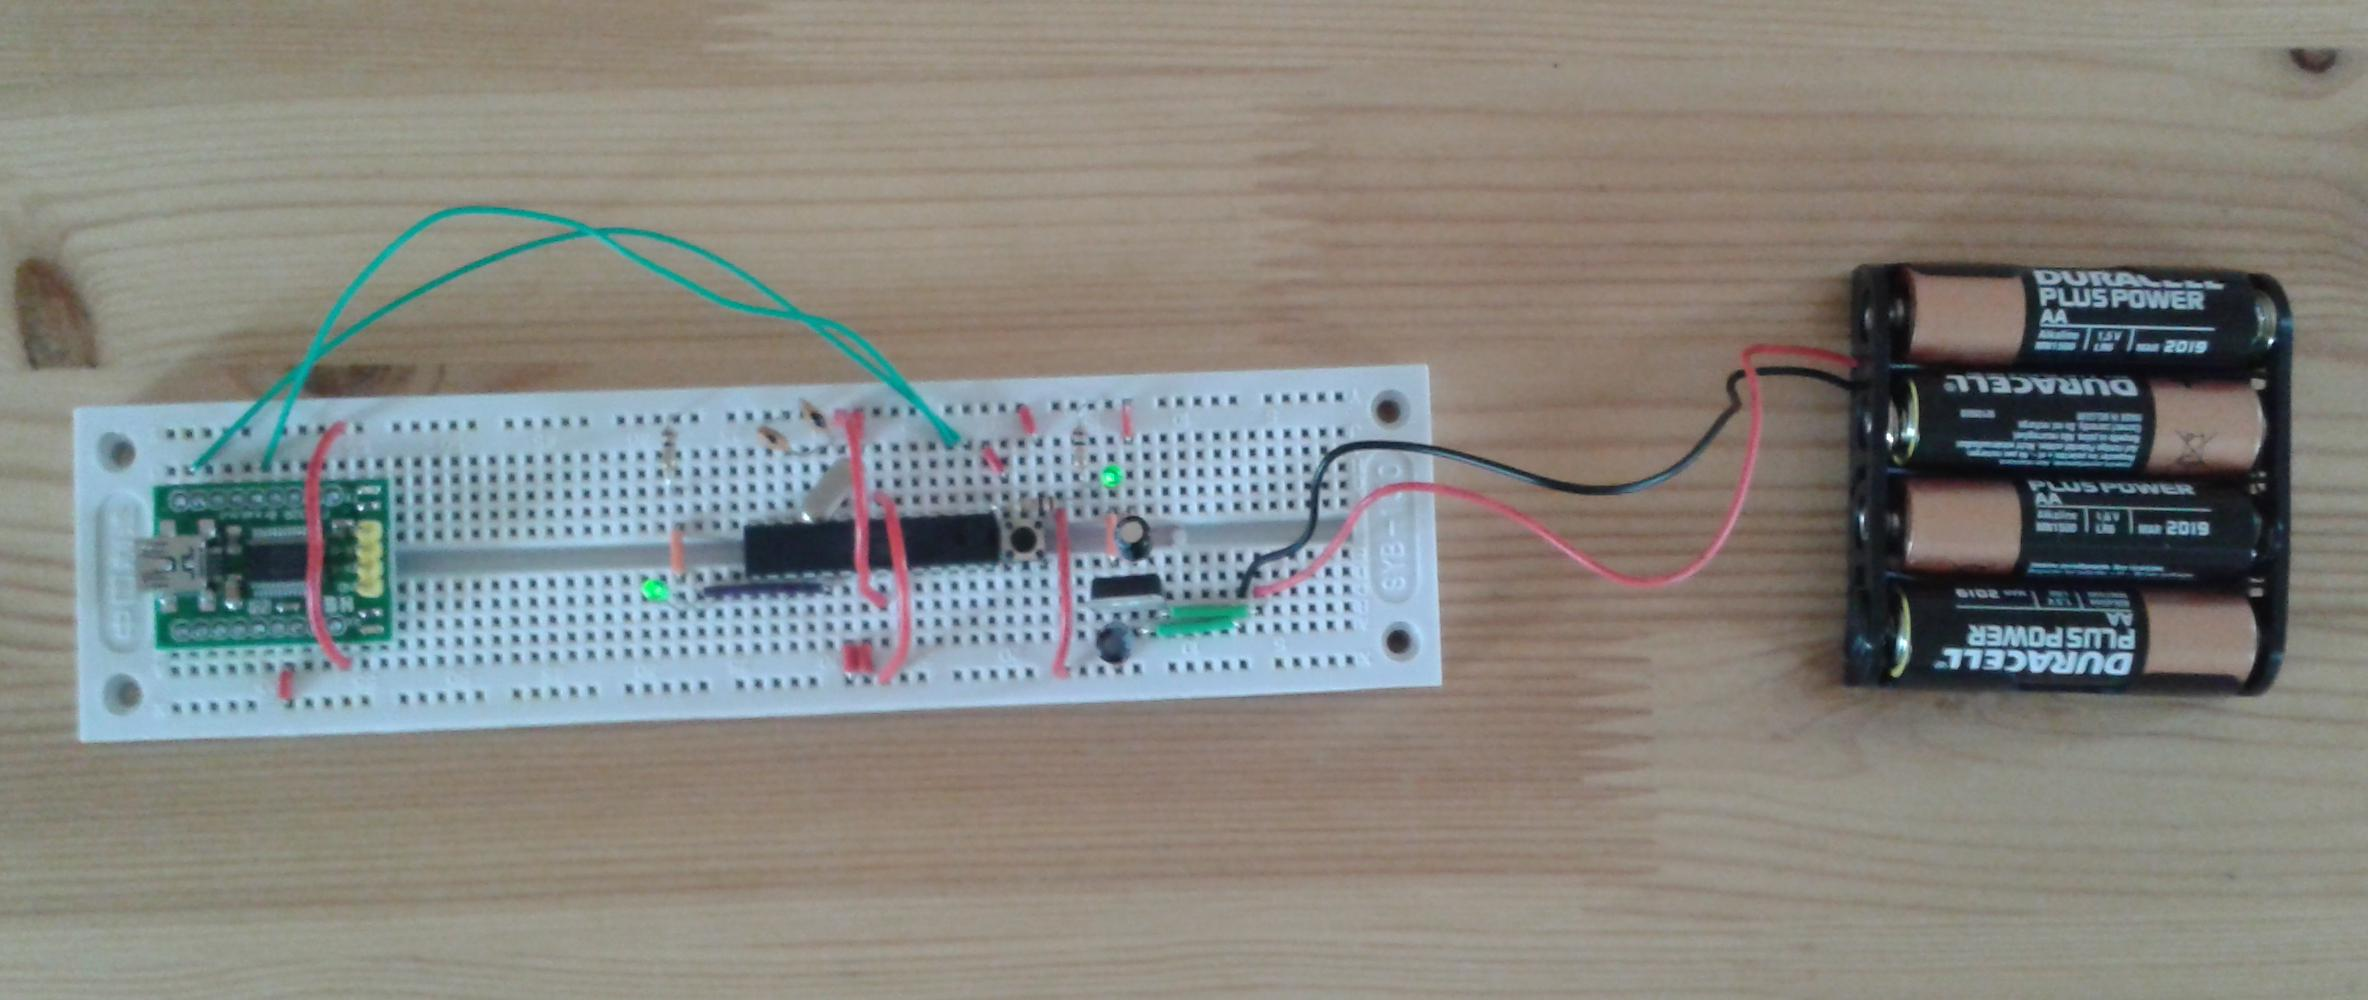 An Arduino build from components